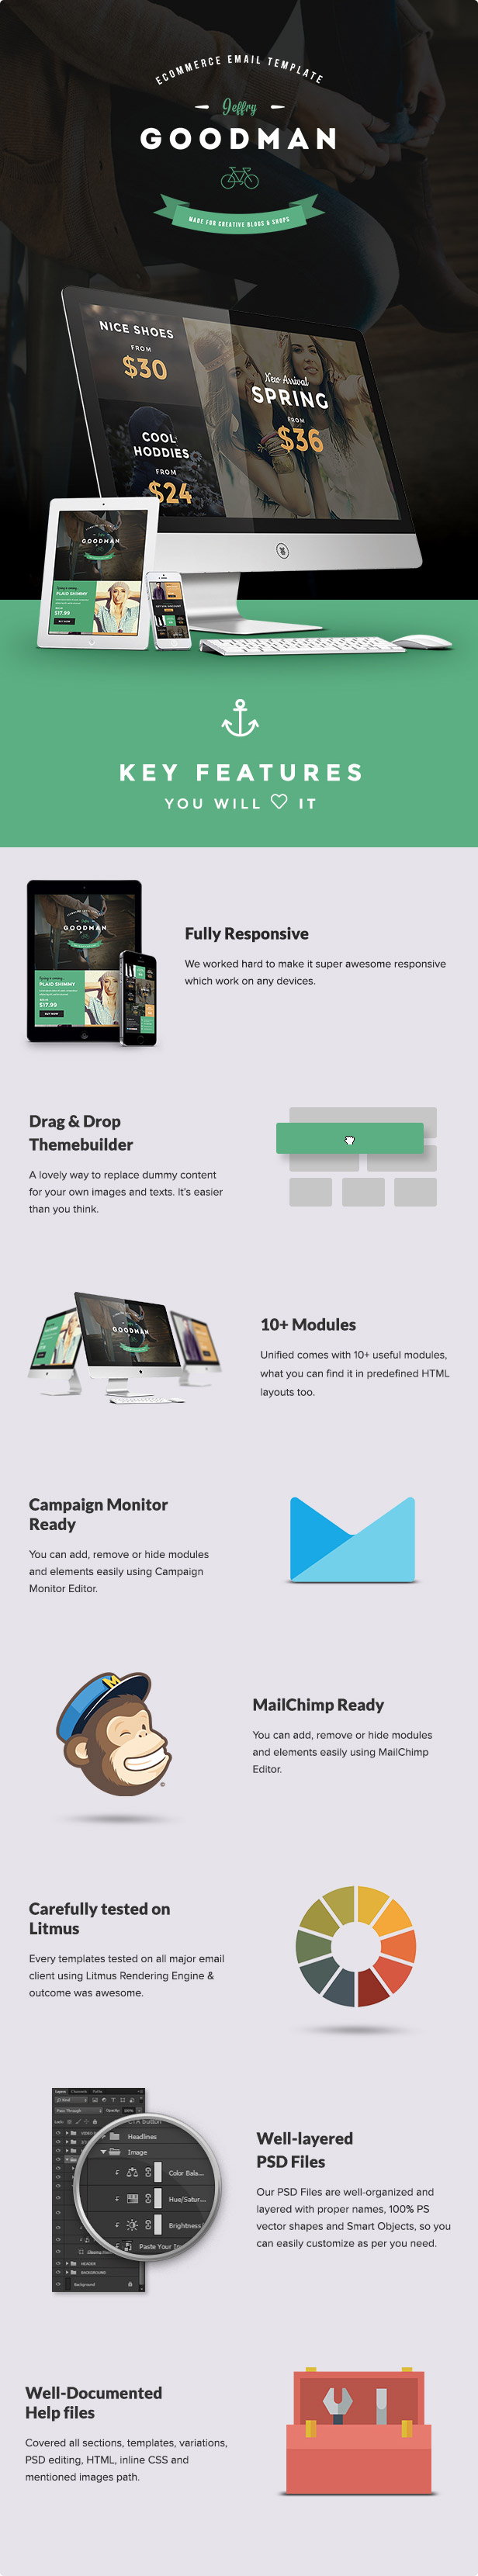 JG - E-commerce Email Template + Builder Access - 1